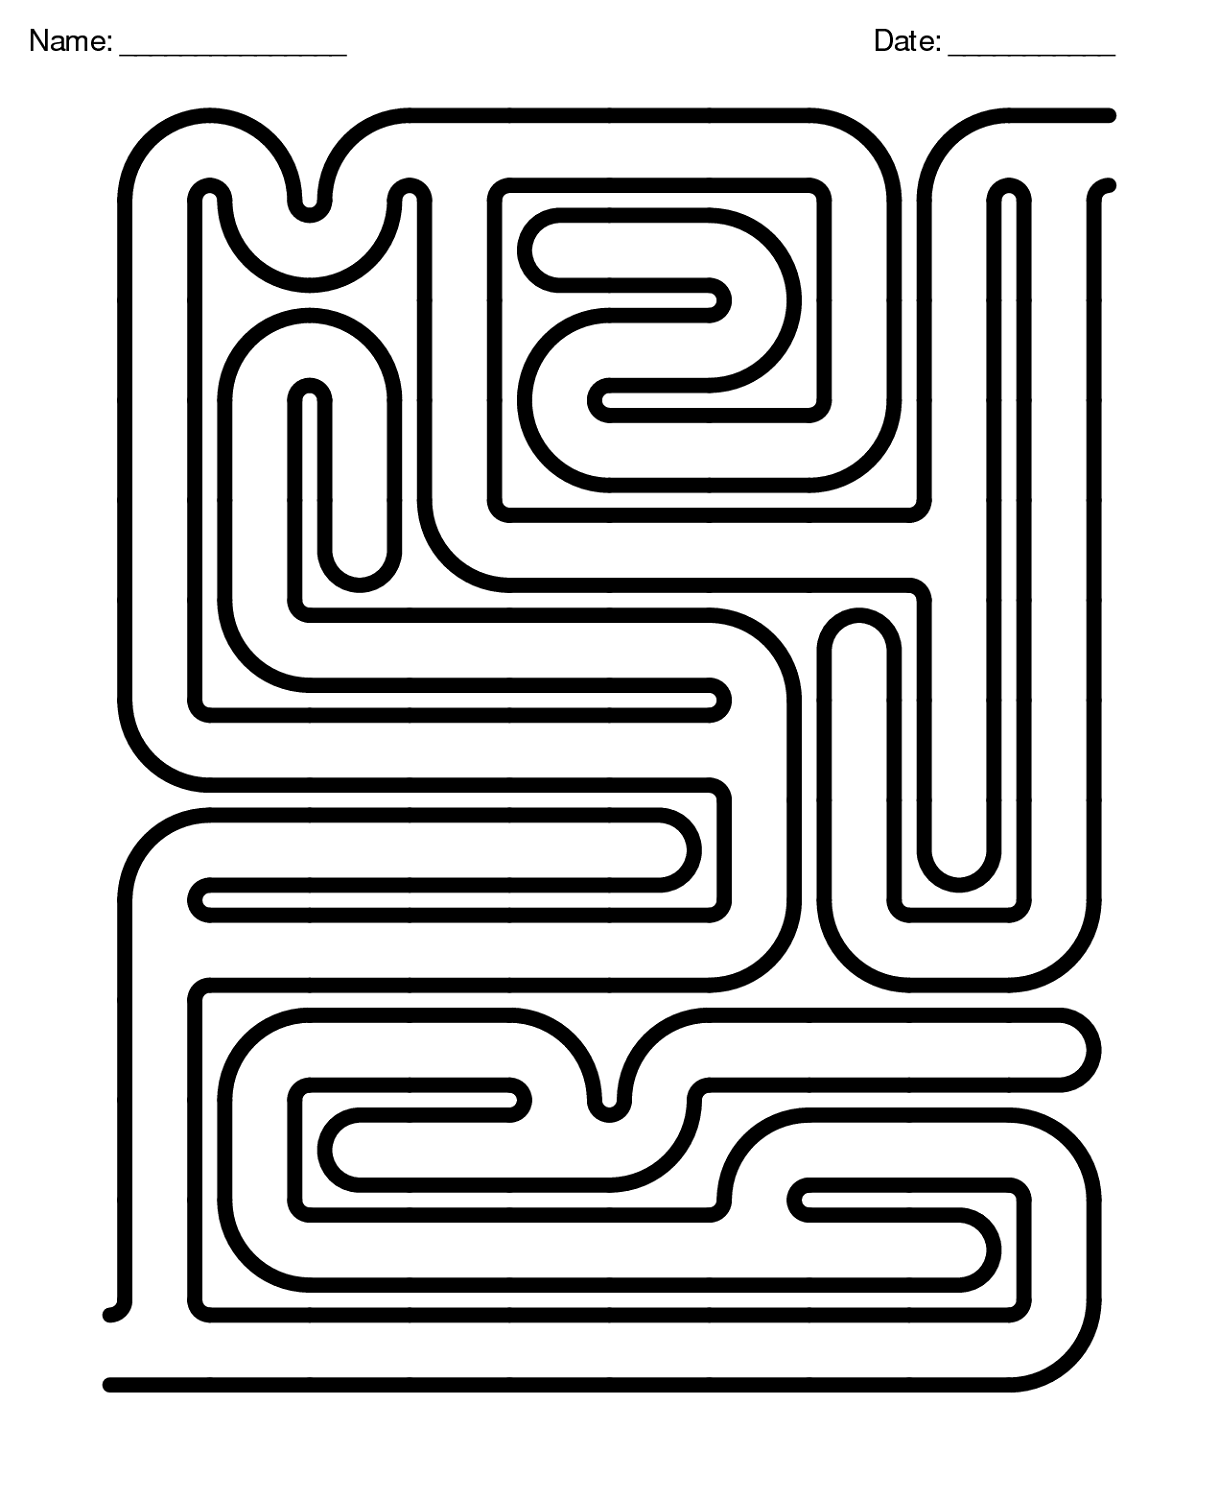 Free Maze Worksheets For Children Activity Shelter Mazes For Kids Printable Printable Mazes Mazes For Kids [ 1500 x 1219 Pixel ]